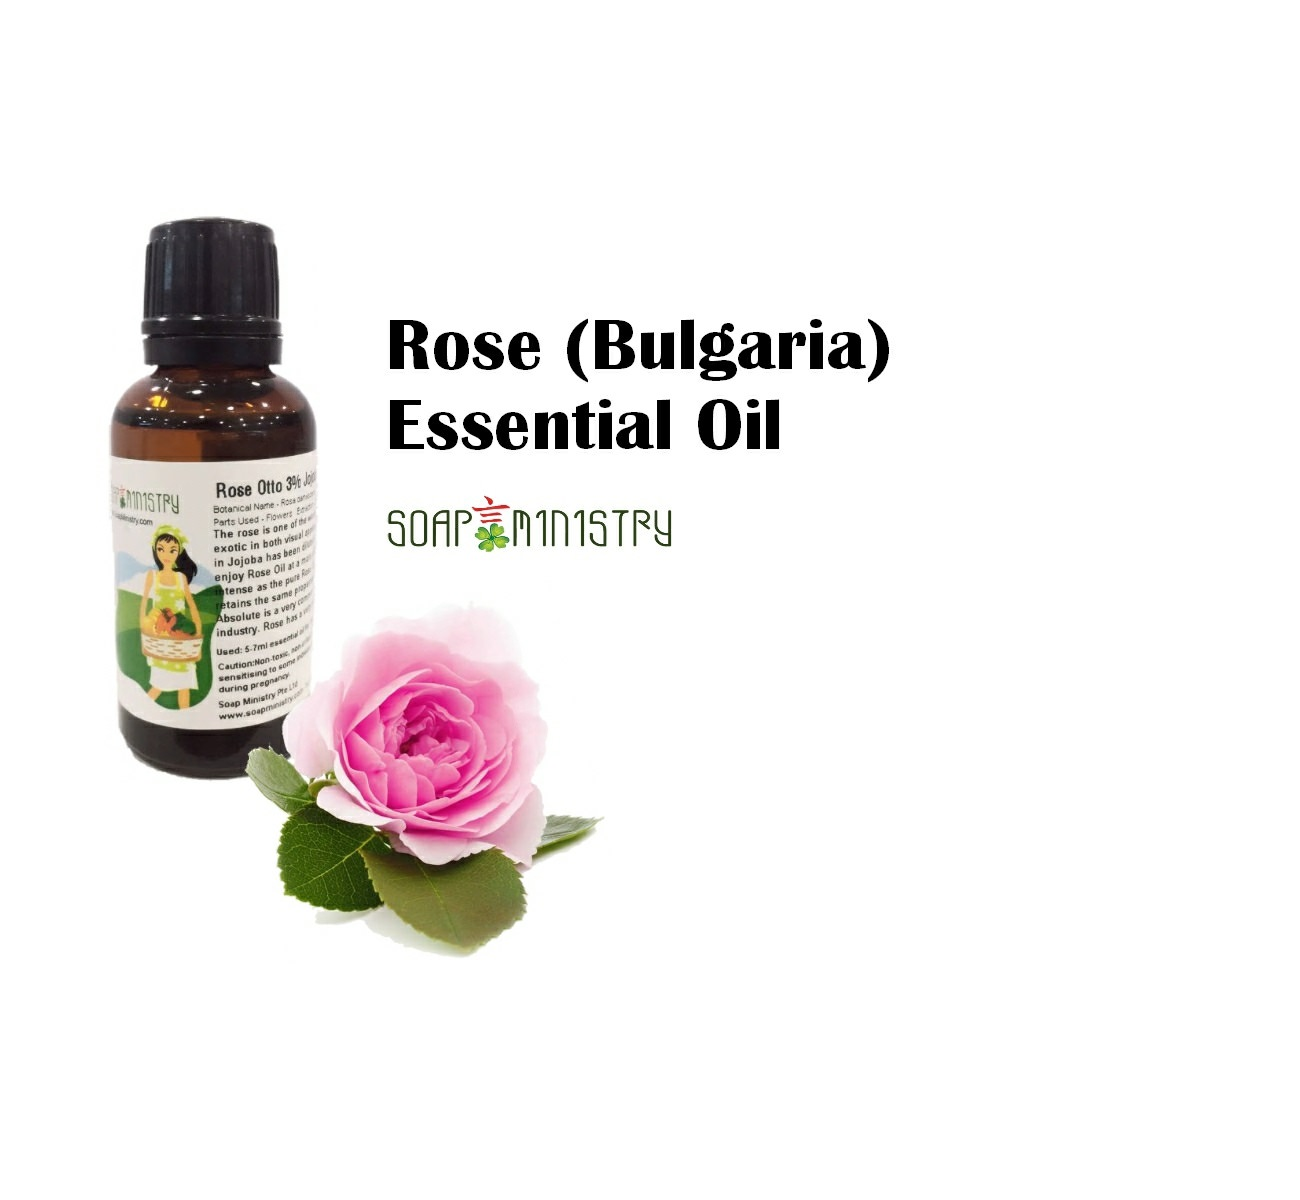 Rose Bulgaria 3 Essential Oil 1L